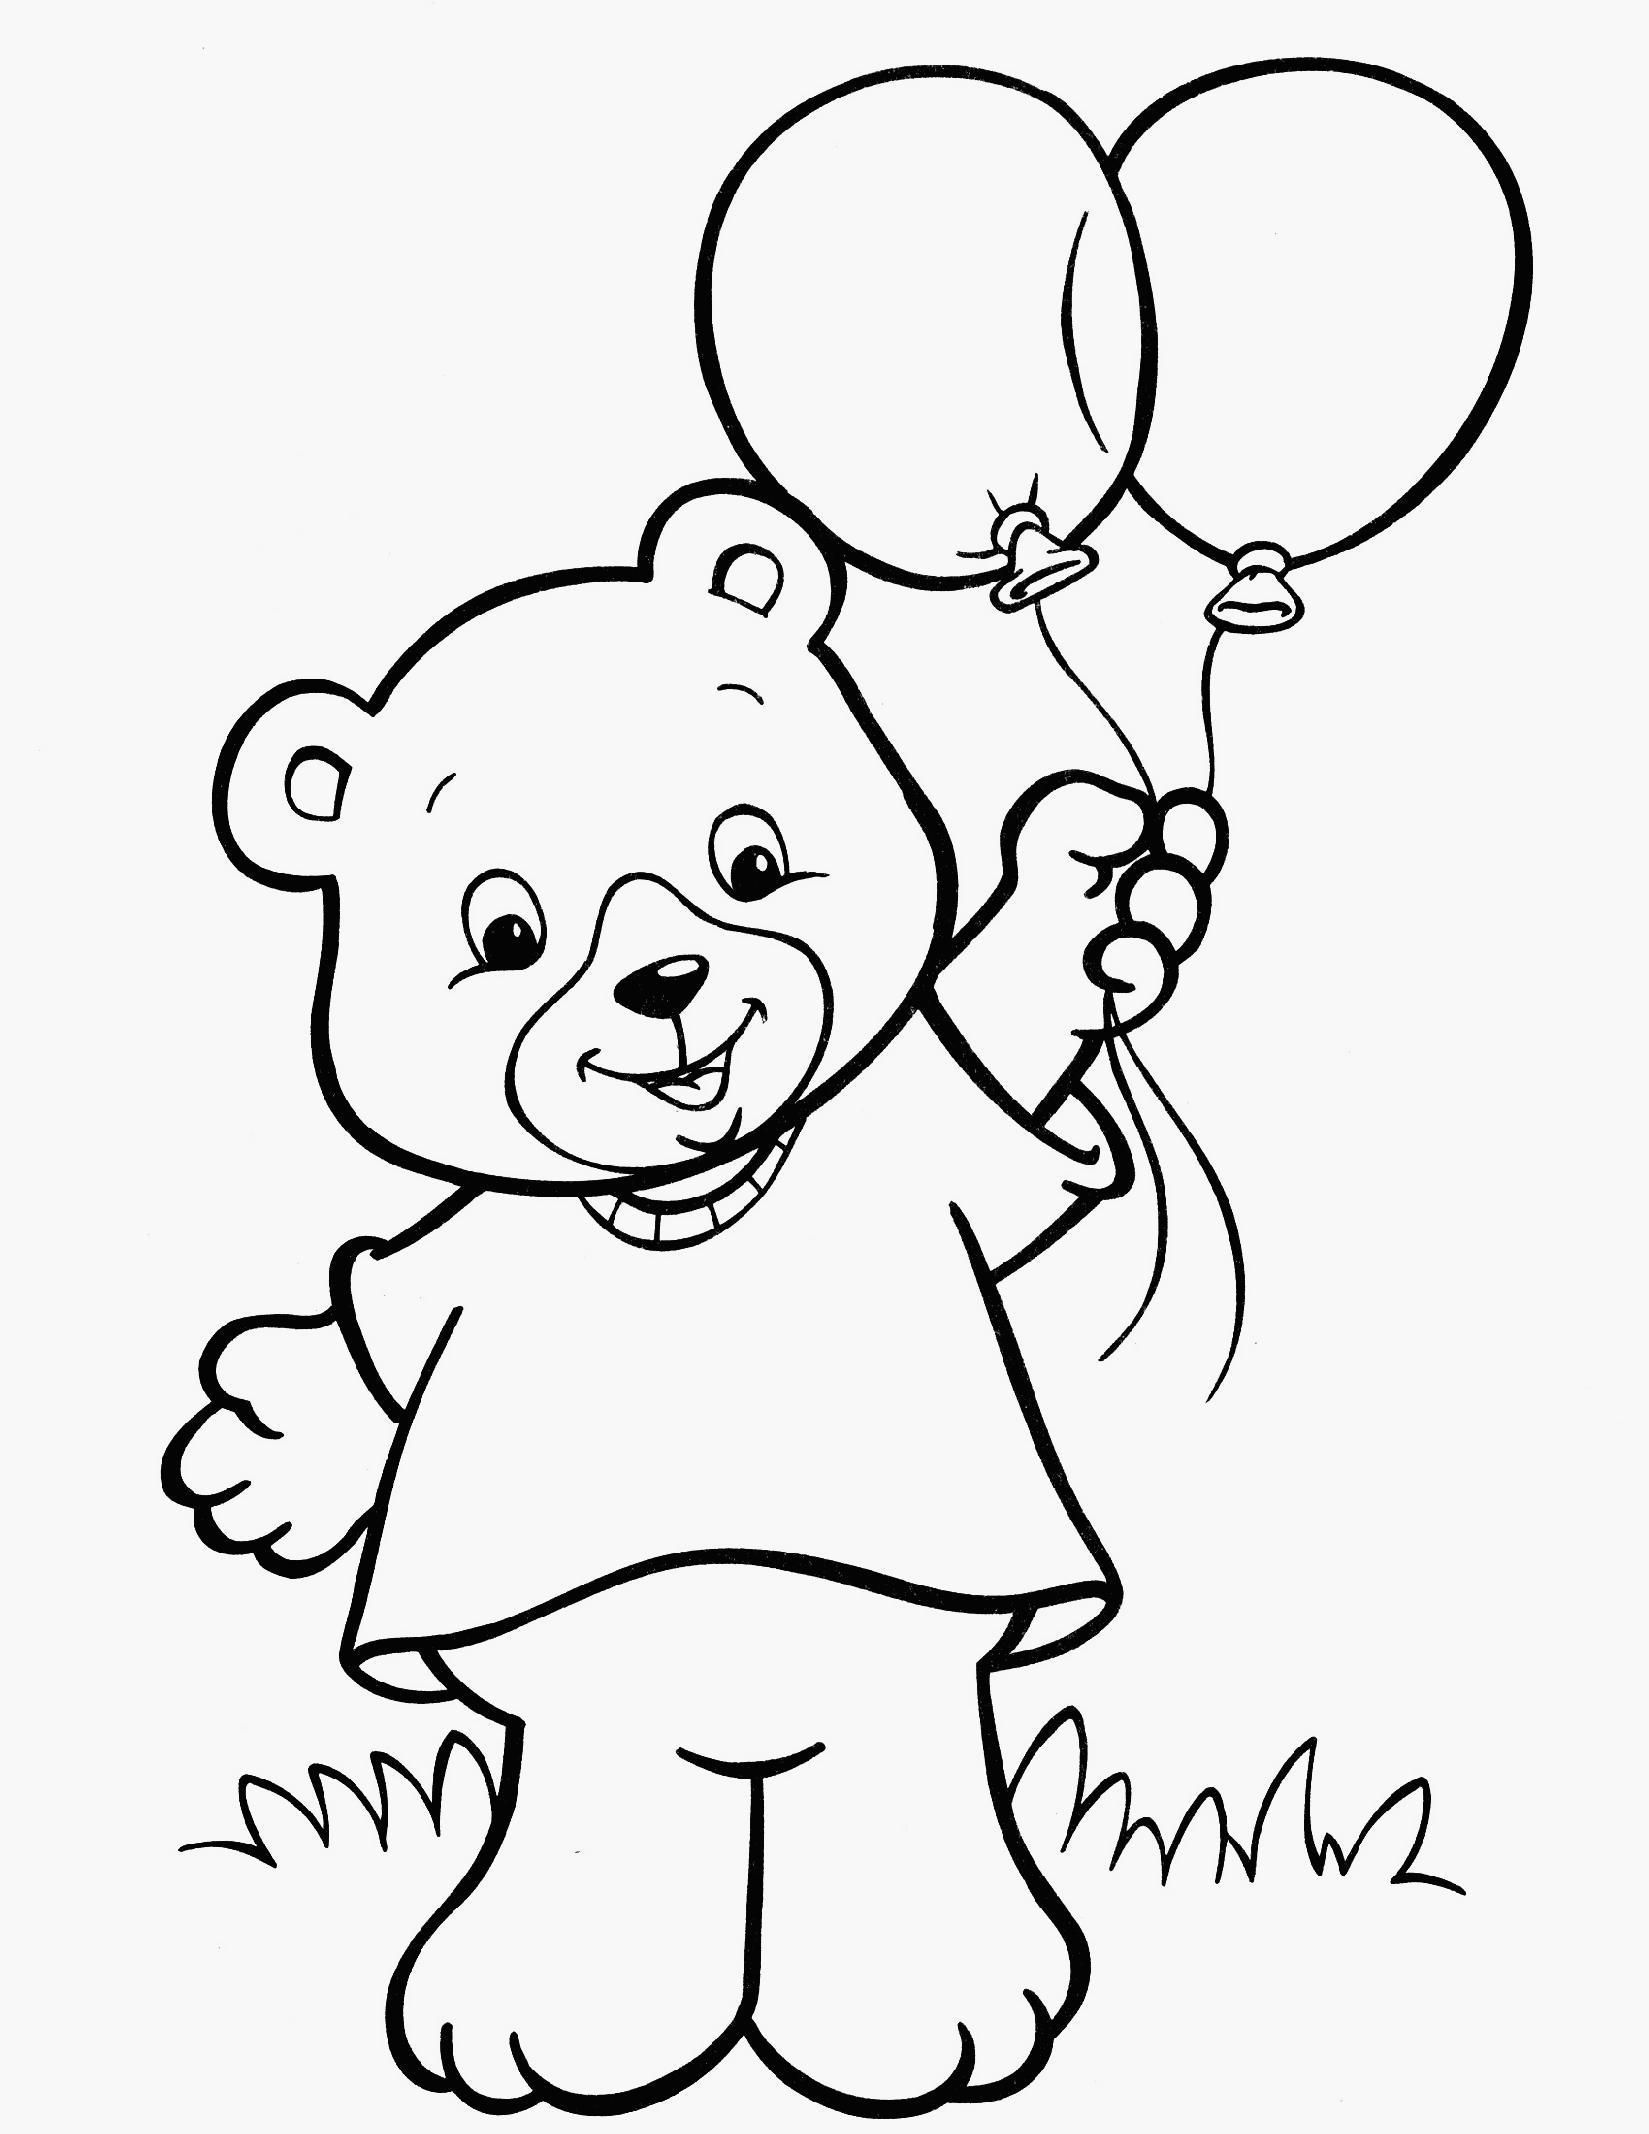 coloring for 4 year olds 4 year old coloring pages free printable 4 year old 4 year olds coloring for